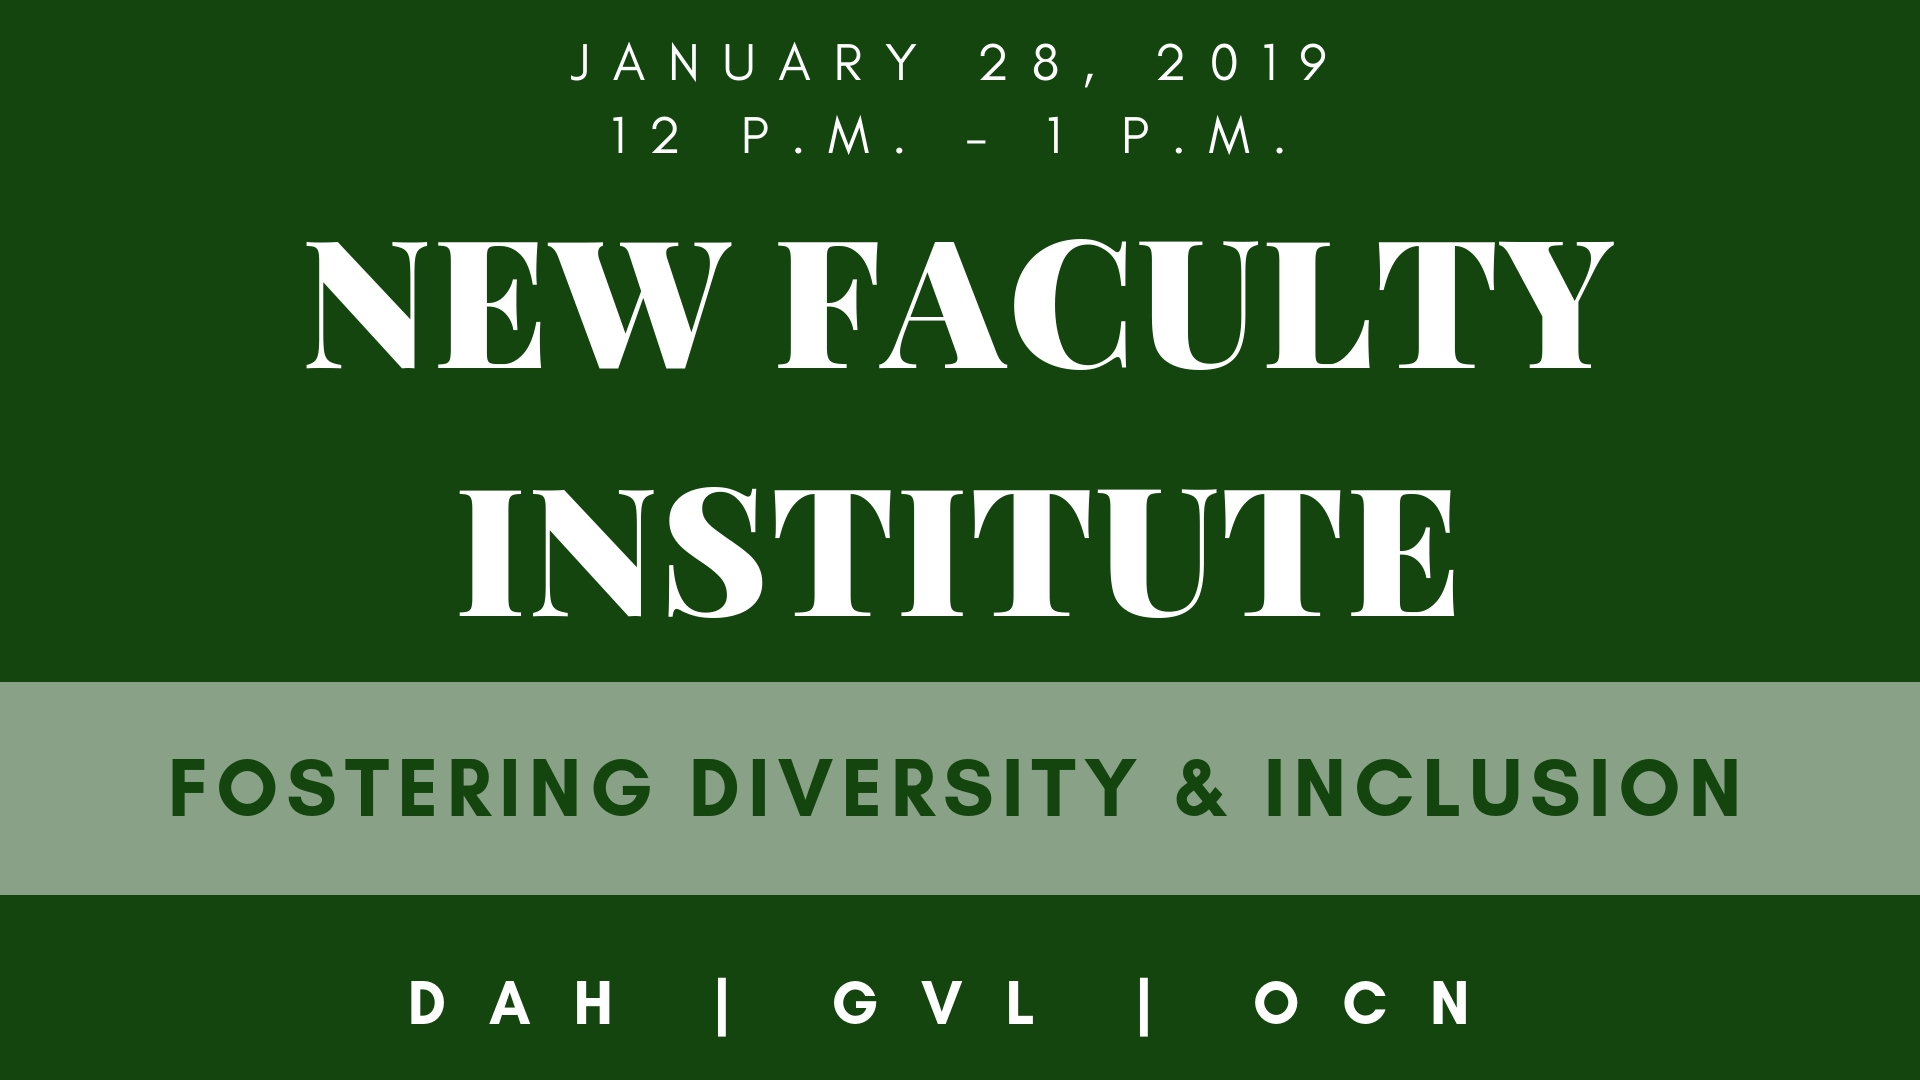 New Faculty Institute information for Dahlonega, Gainesville, and Oconee campuses